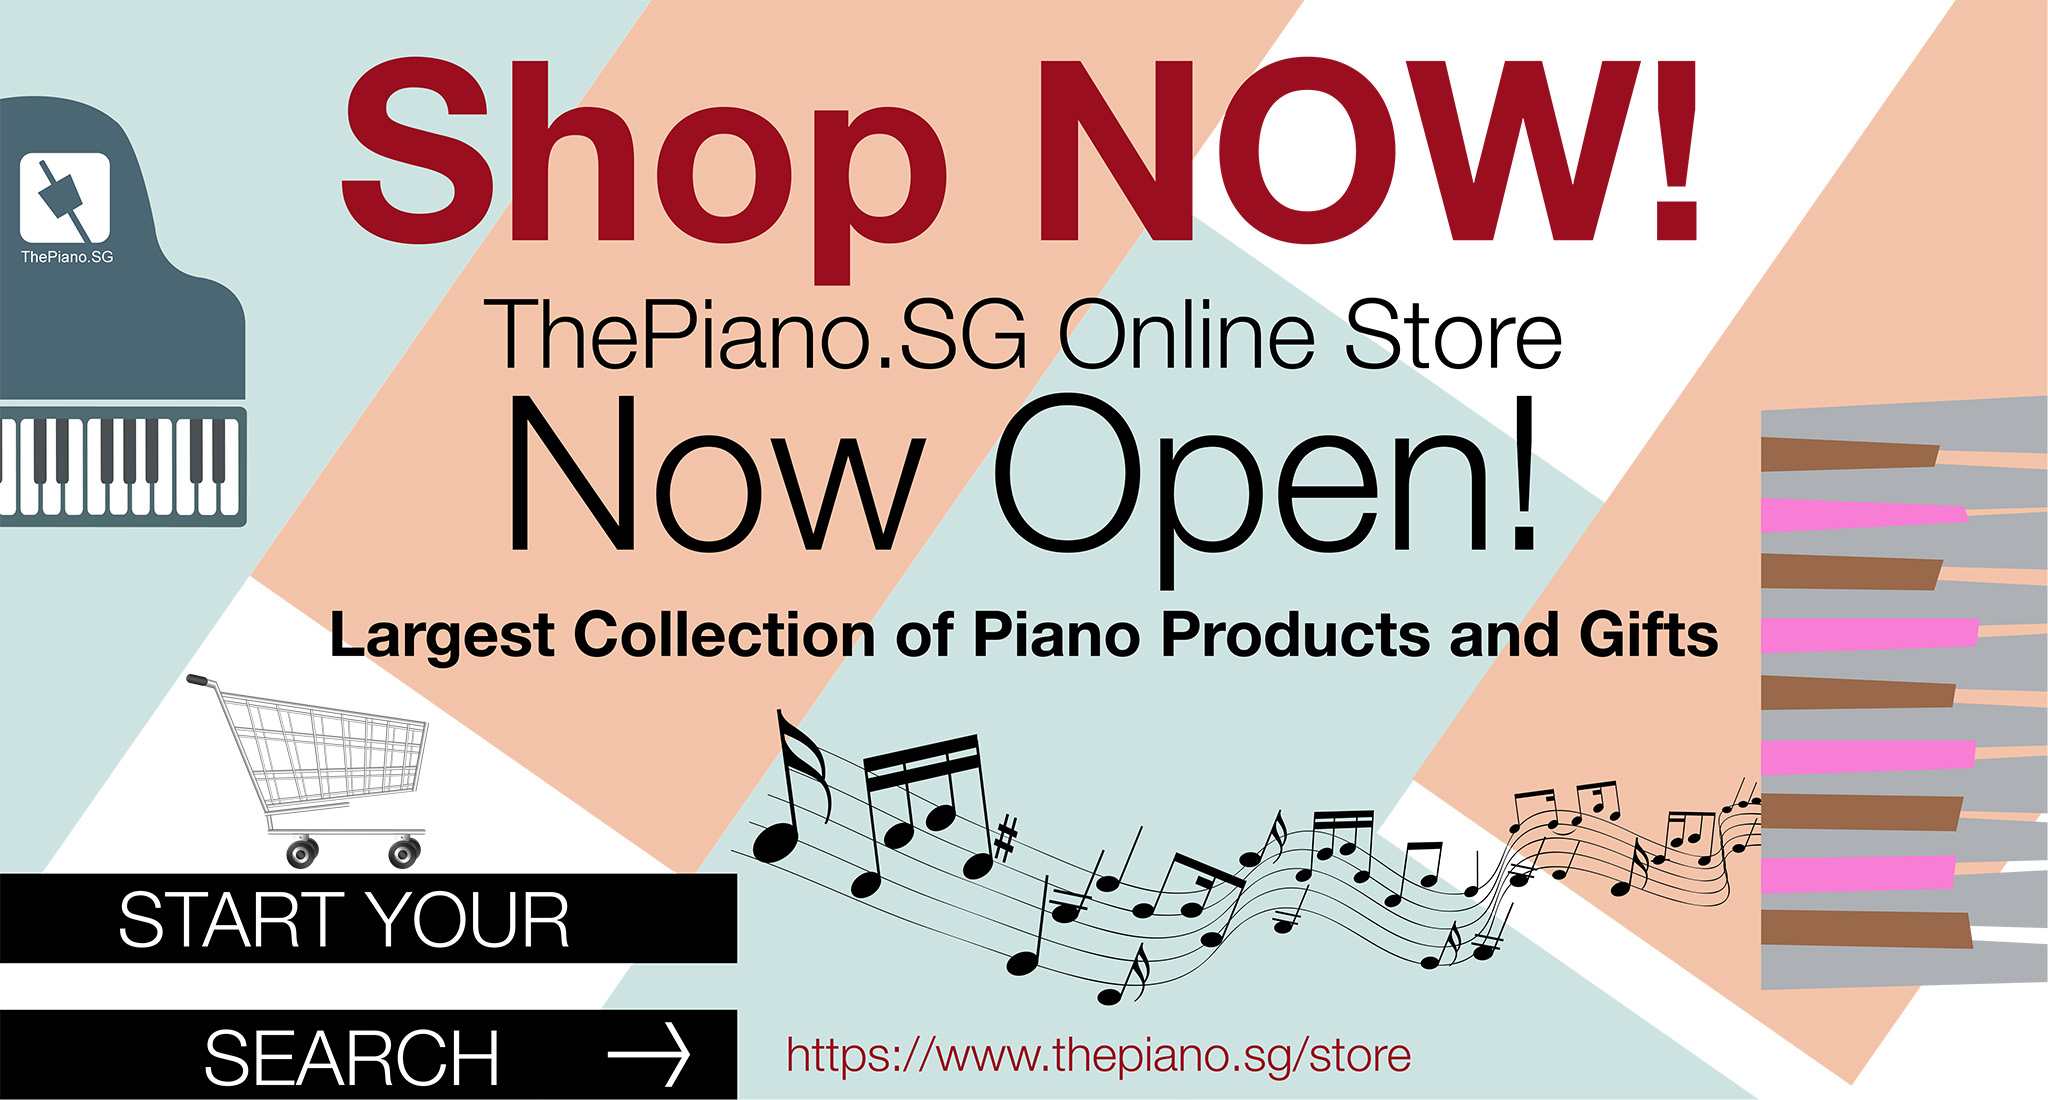 ThePiano.SG Online Store Is Now Open